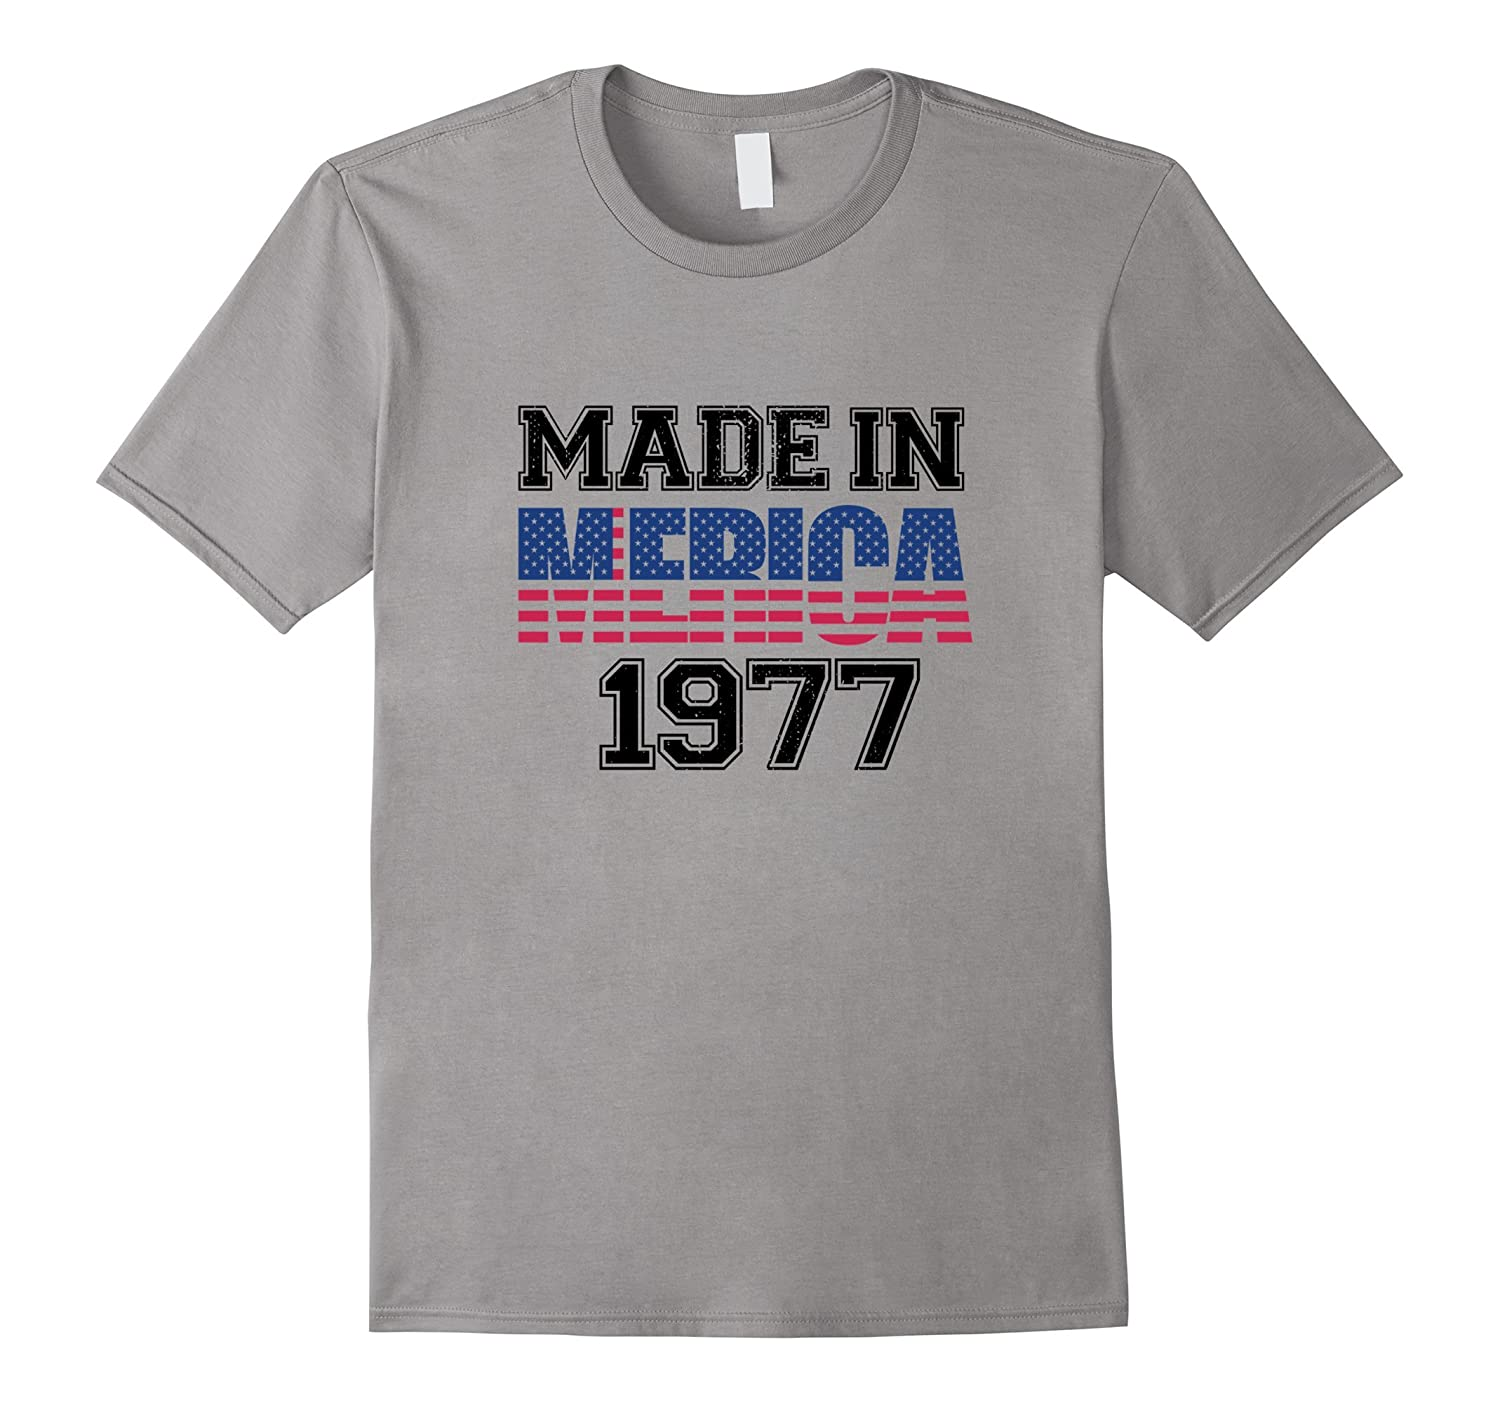 Made in MERICA 1977 Shirt Proud Patriot Pride Red White Blue-Vaci